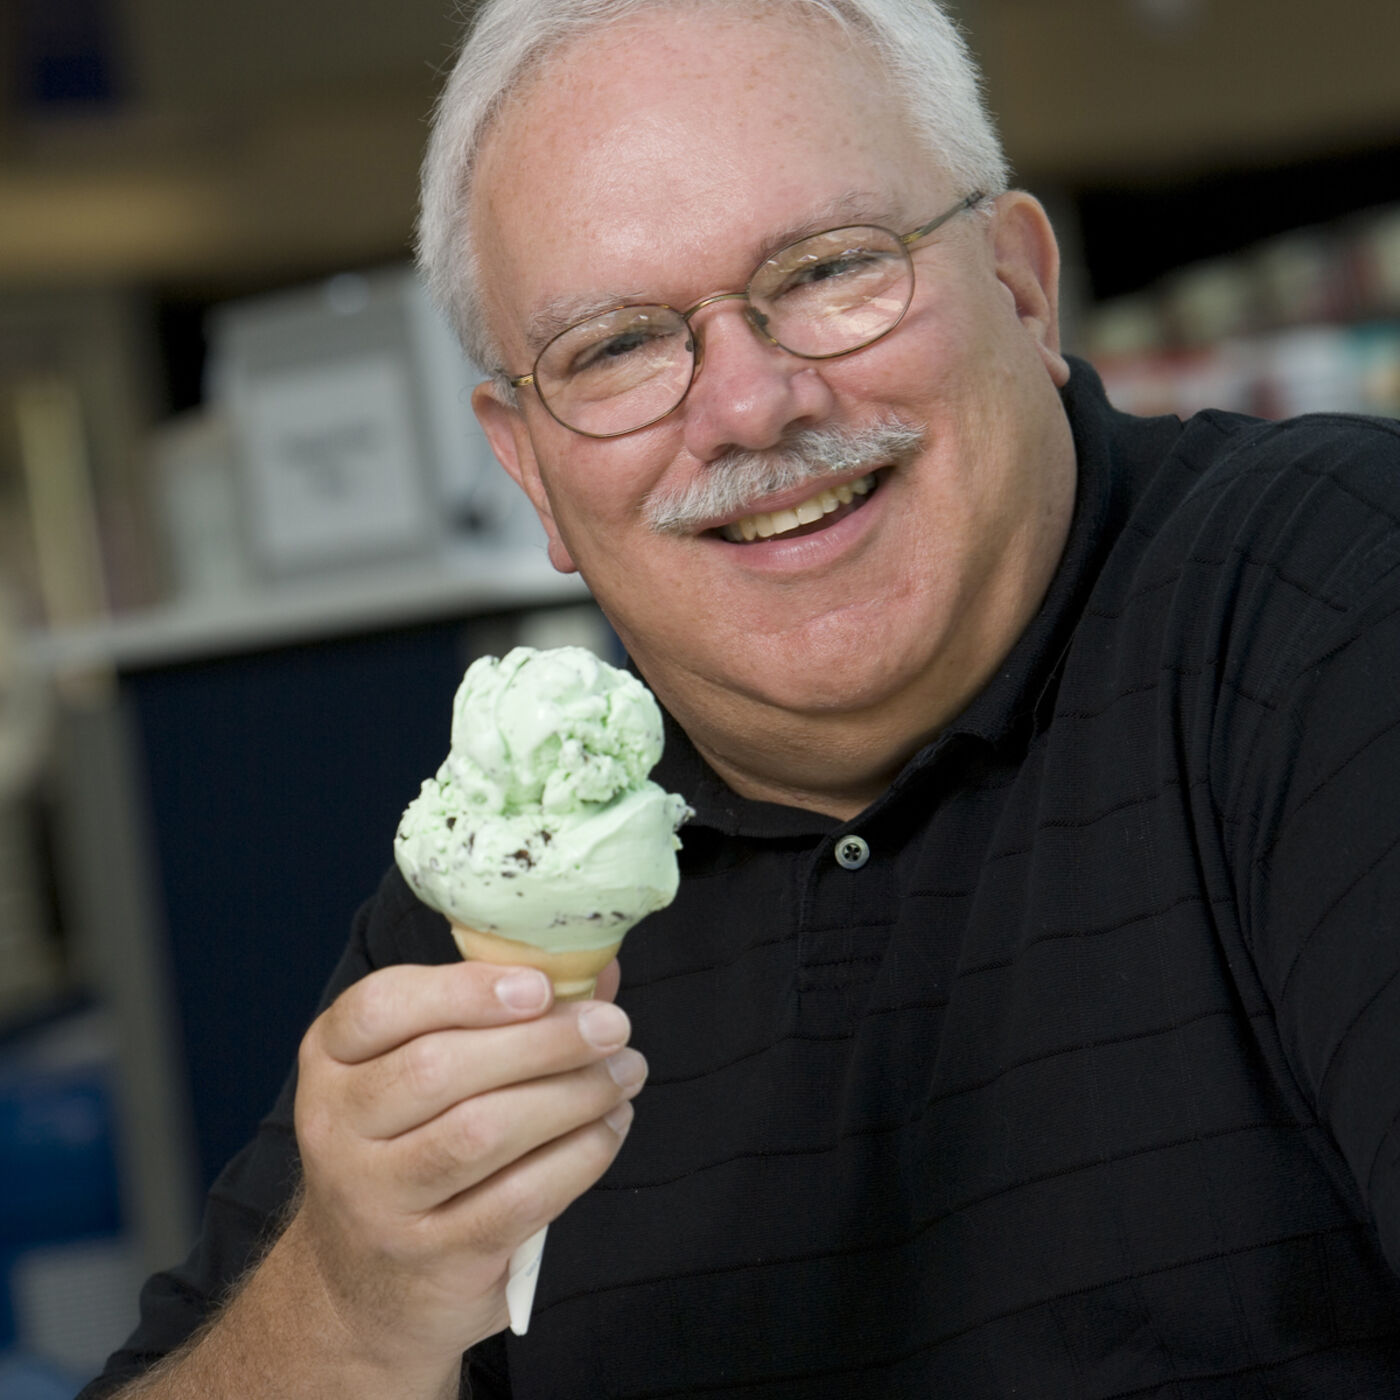 Episode 98: Ice Cream and Football: A Conversation with Lee Stout